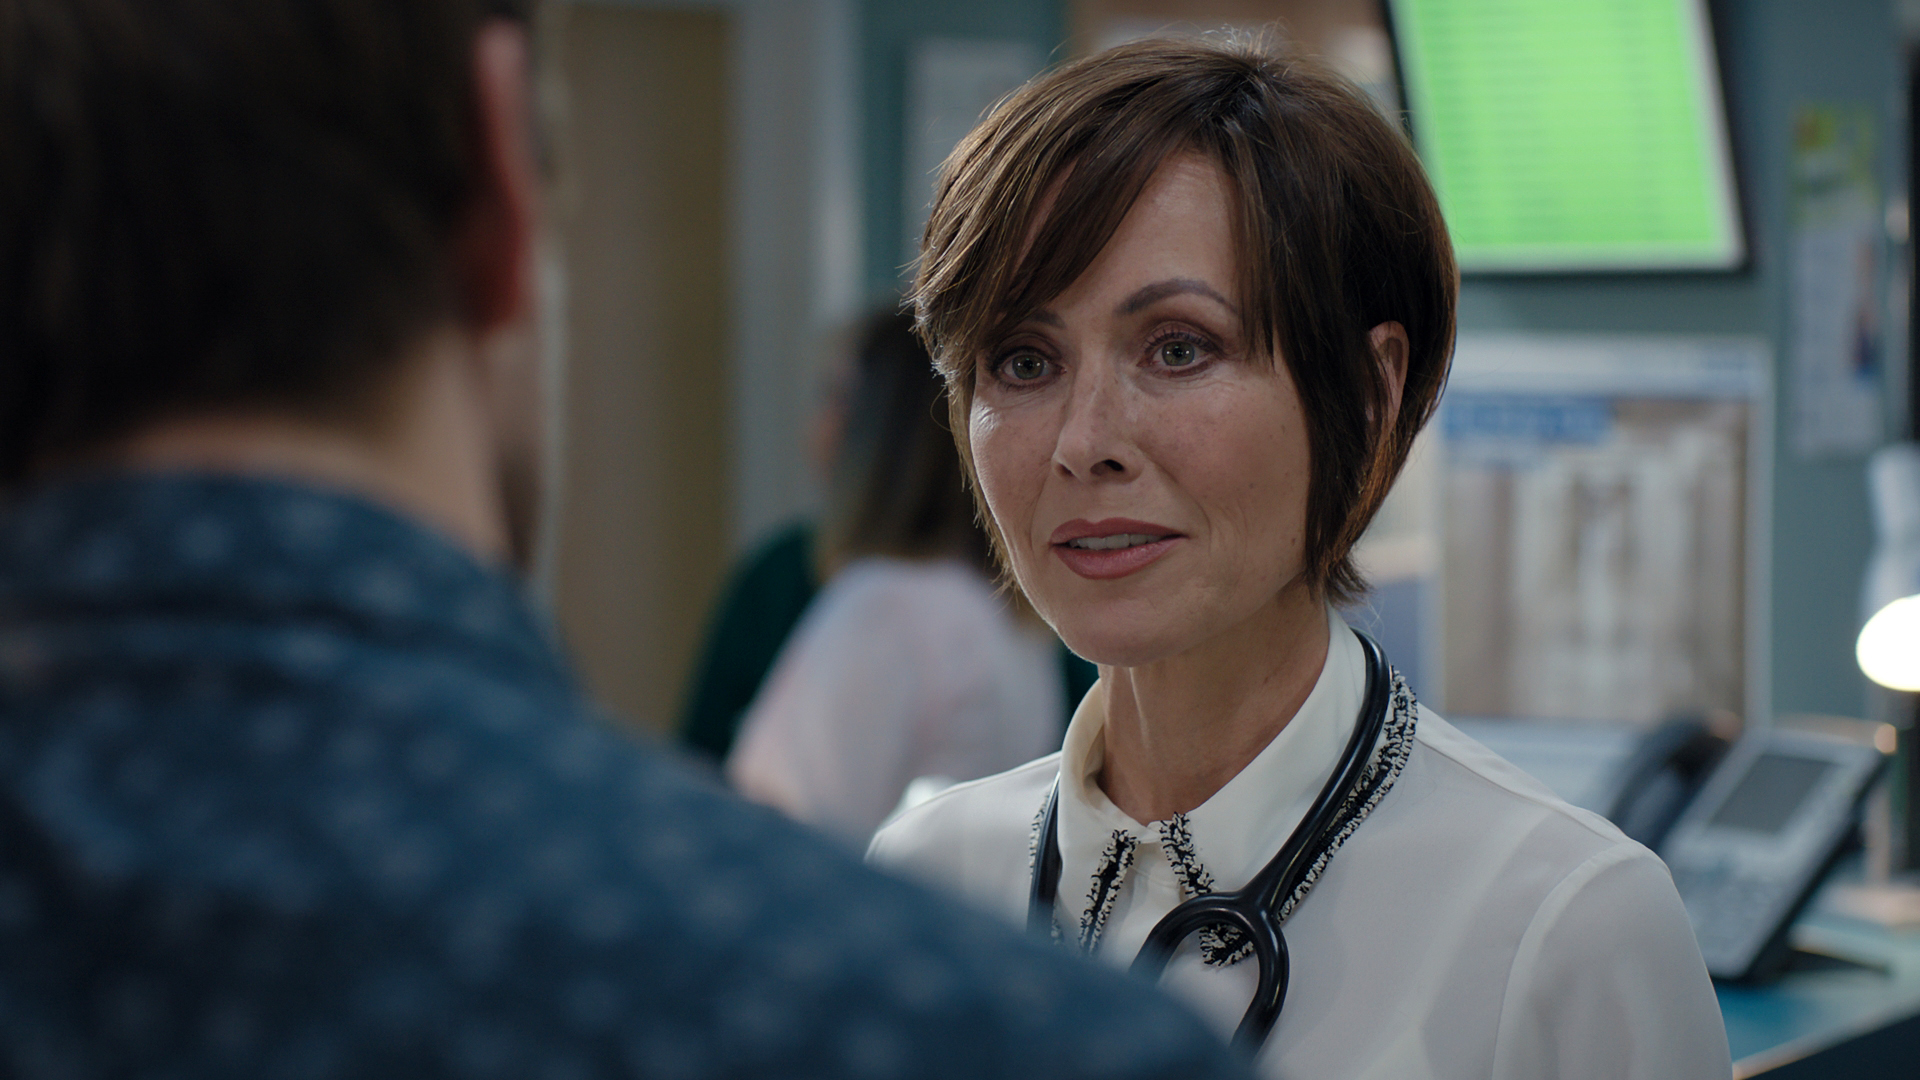 Casualty clarifies Connie Beauchamp exit rumours after Amanda Mealing tweet